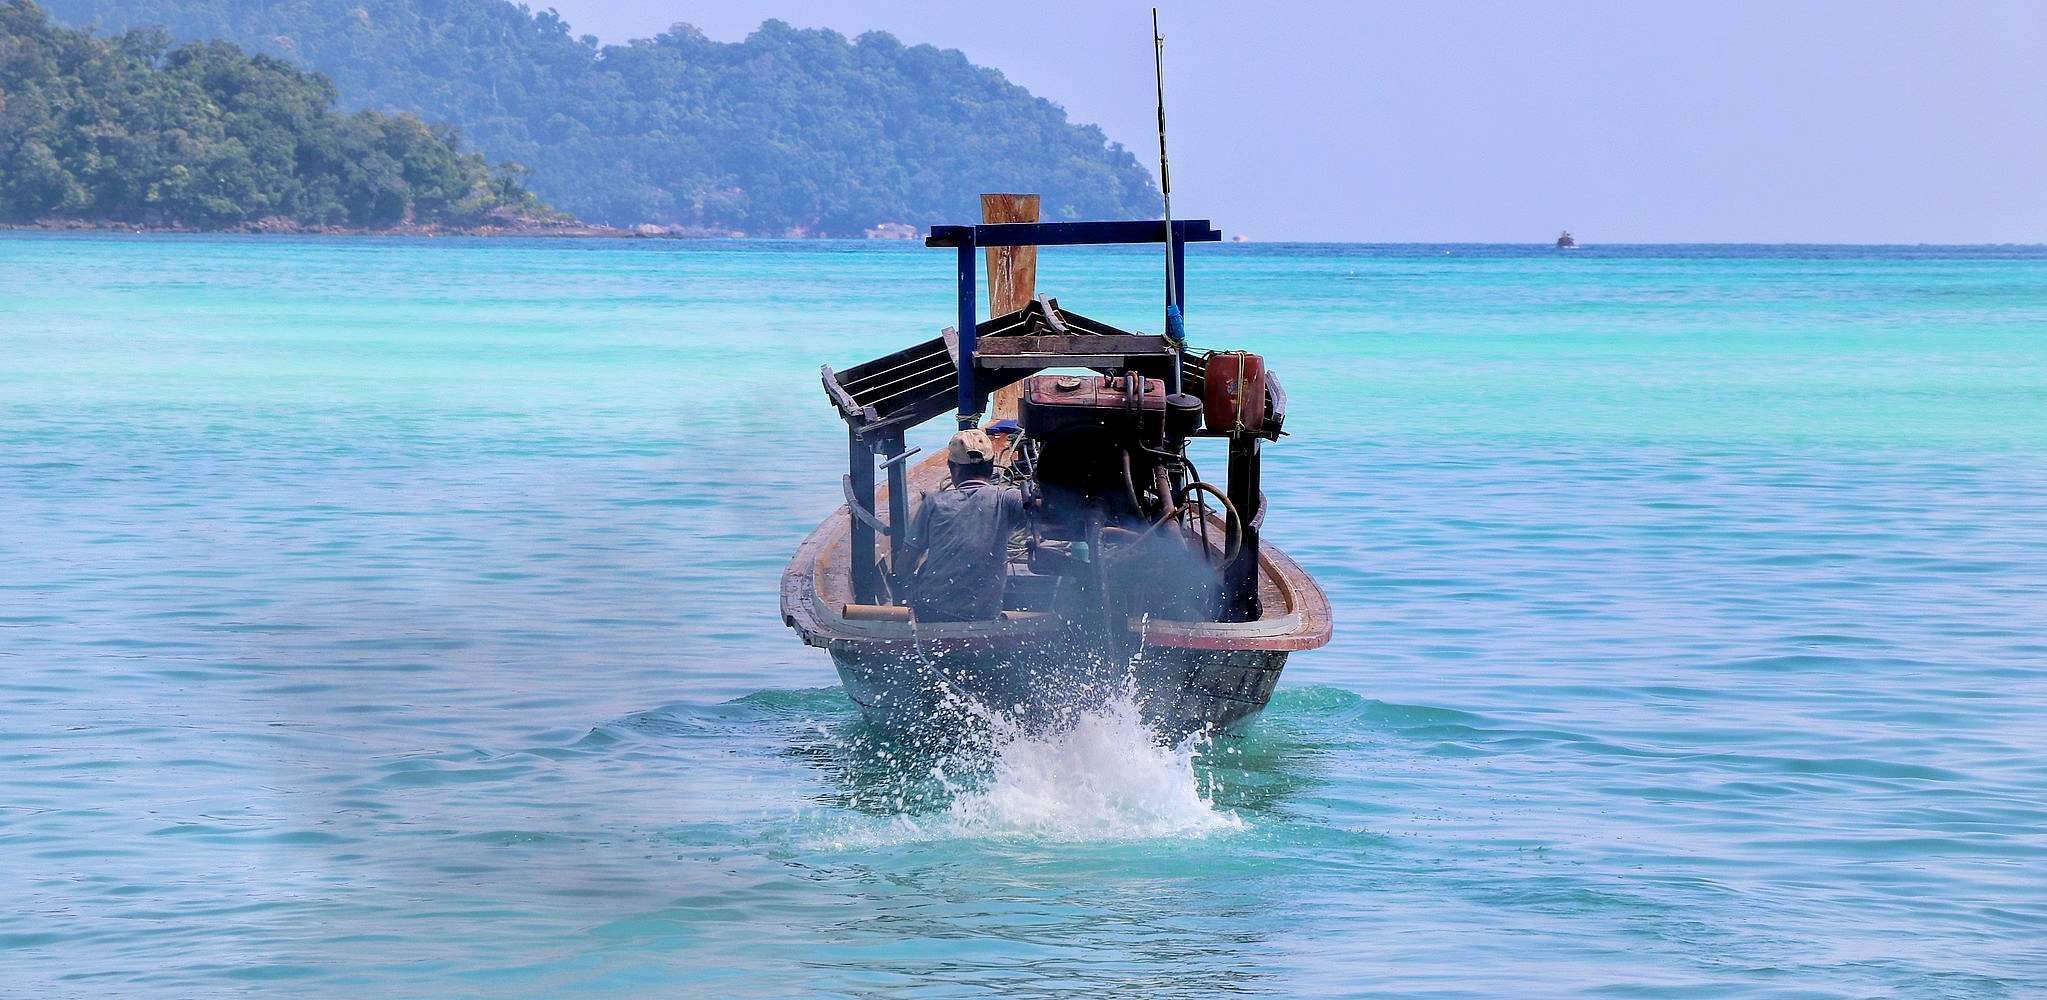 longtail boat in the water with smoking engine